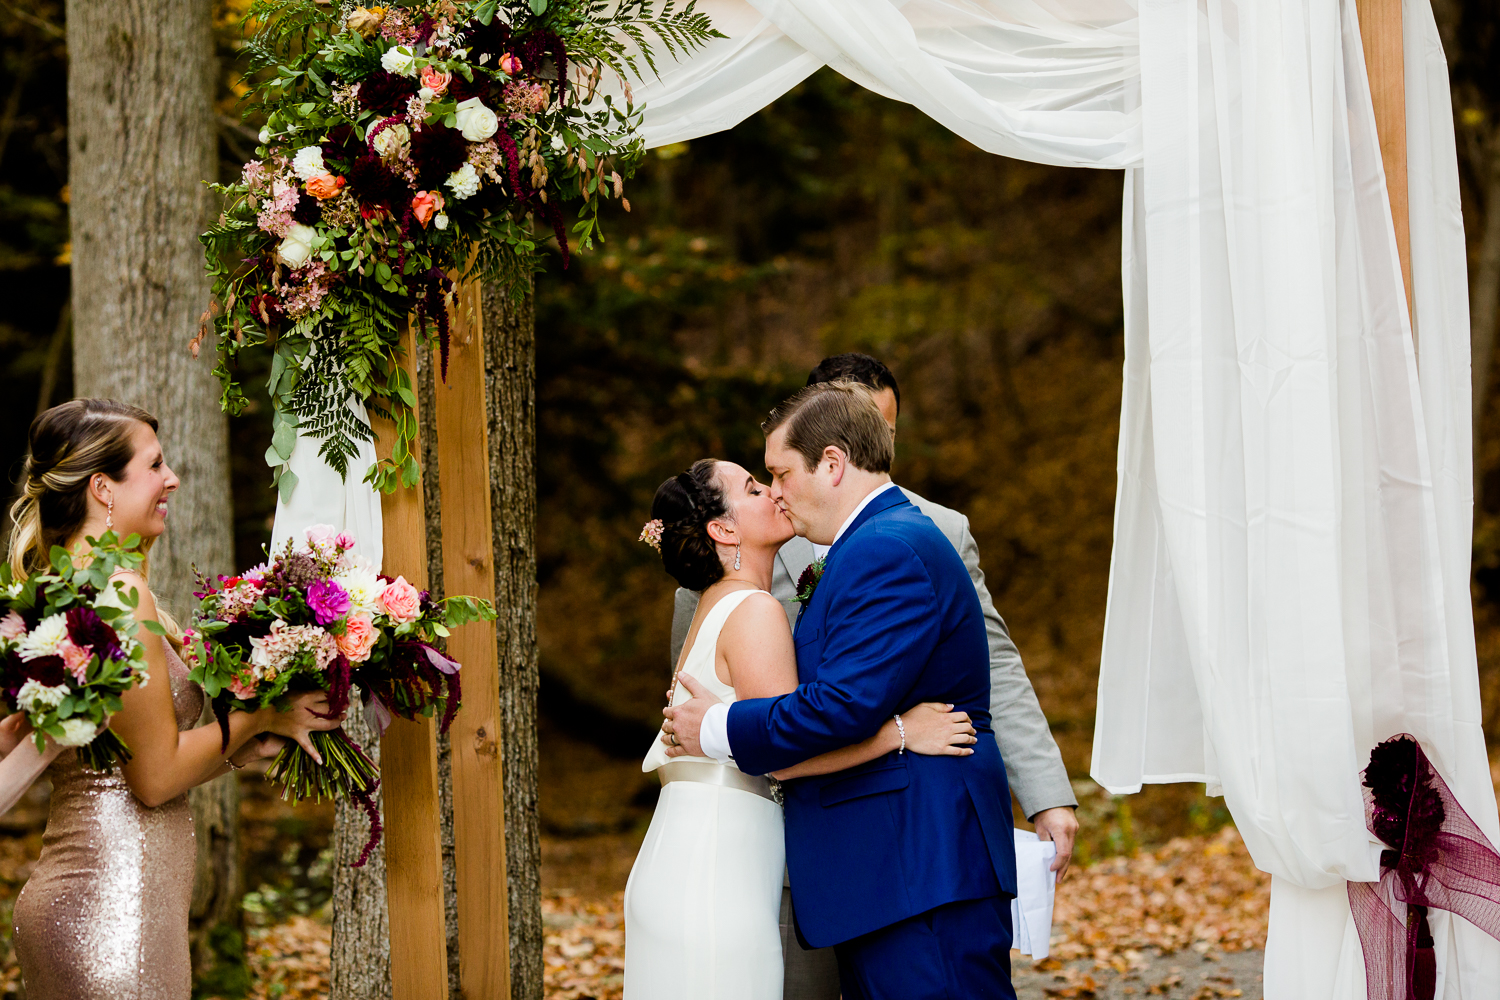 First Kiss at New Park Retreat in Ithaca, NY.